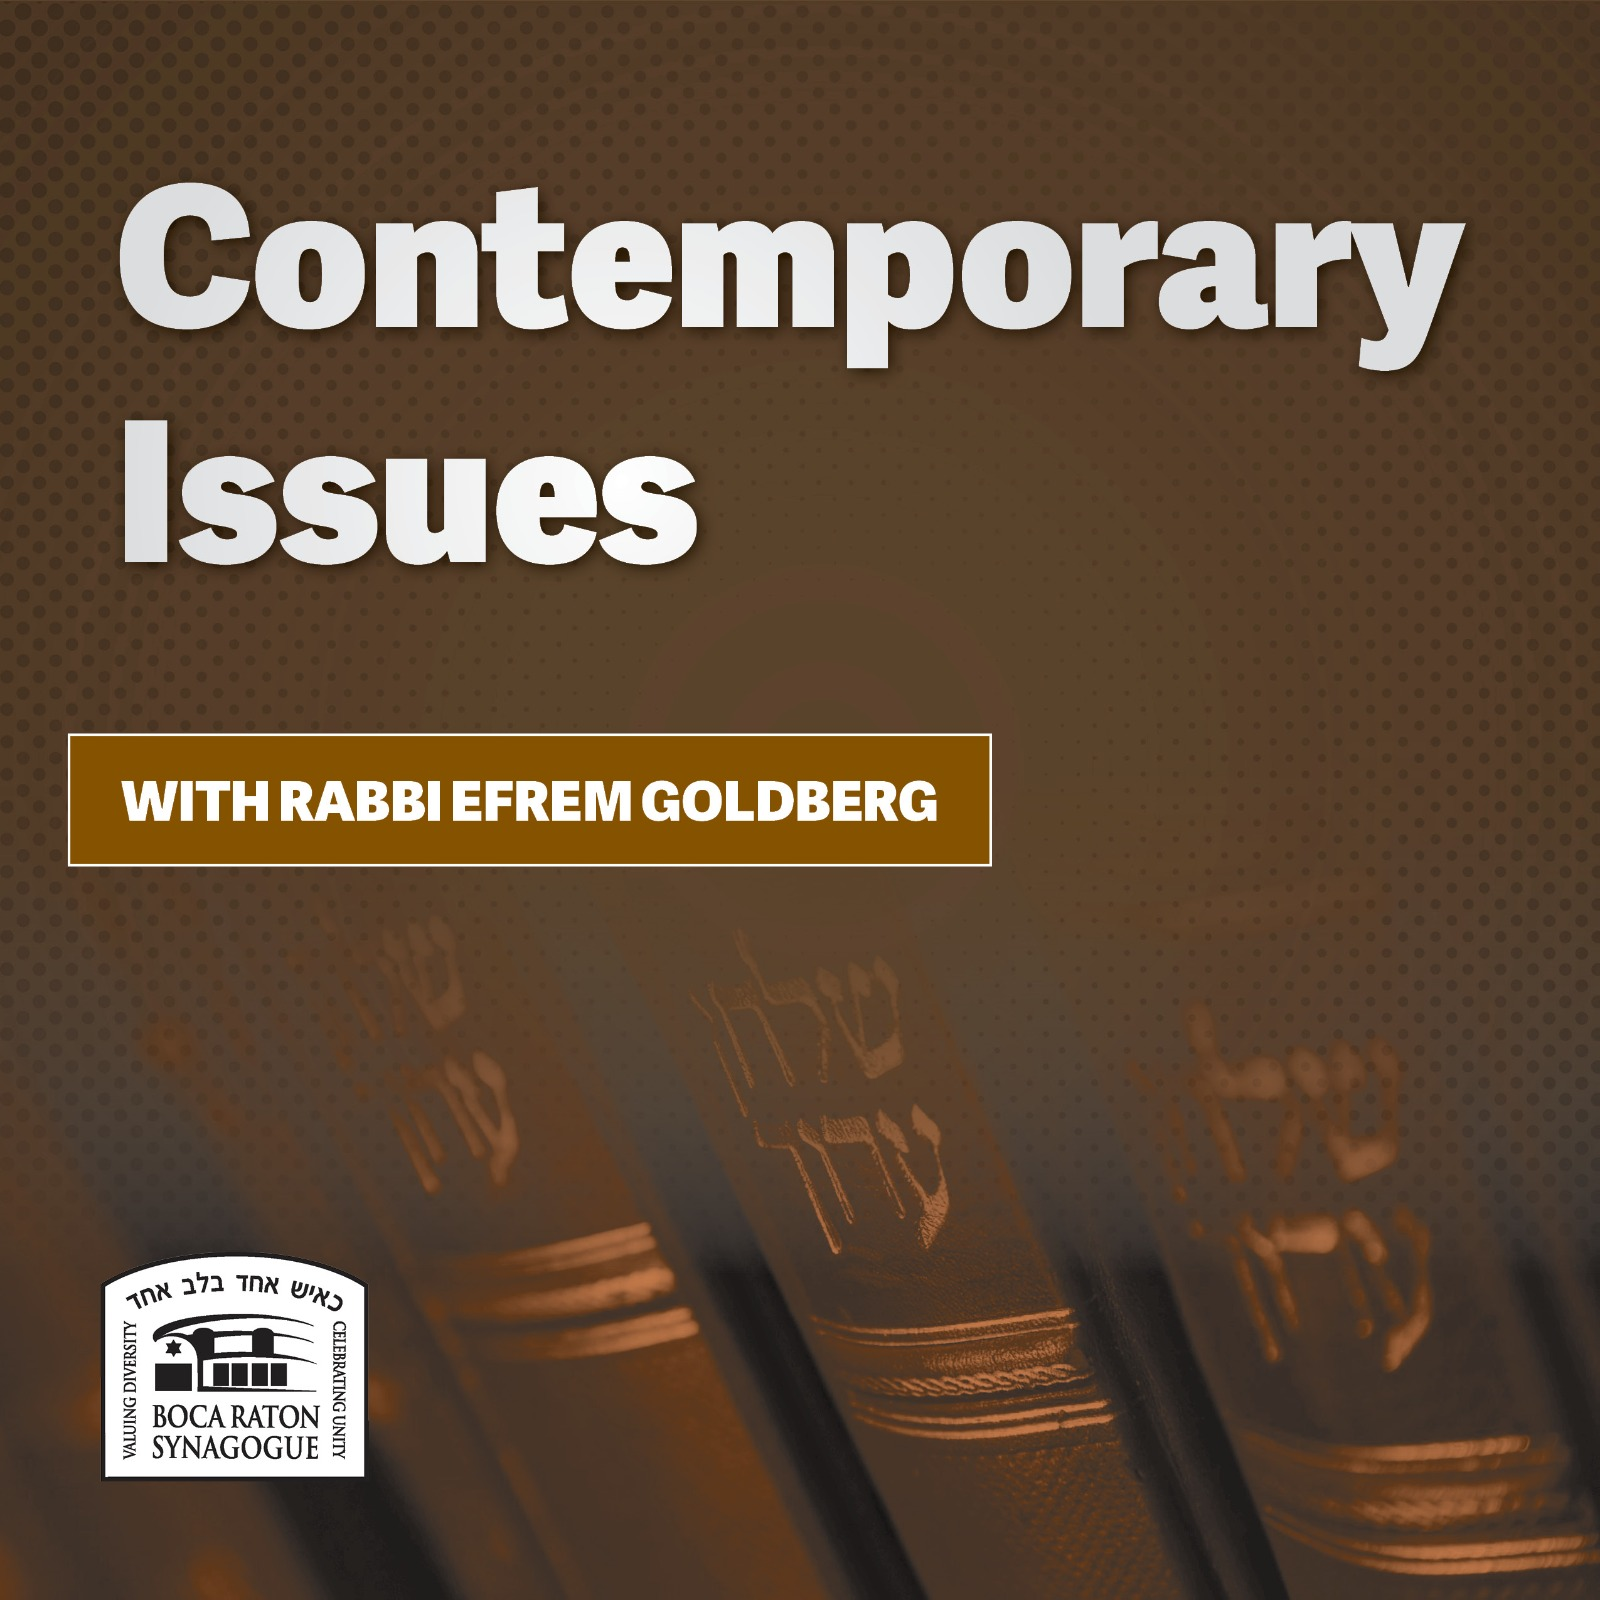 Listen: Contemporary Issues